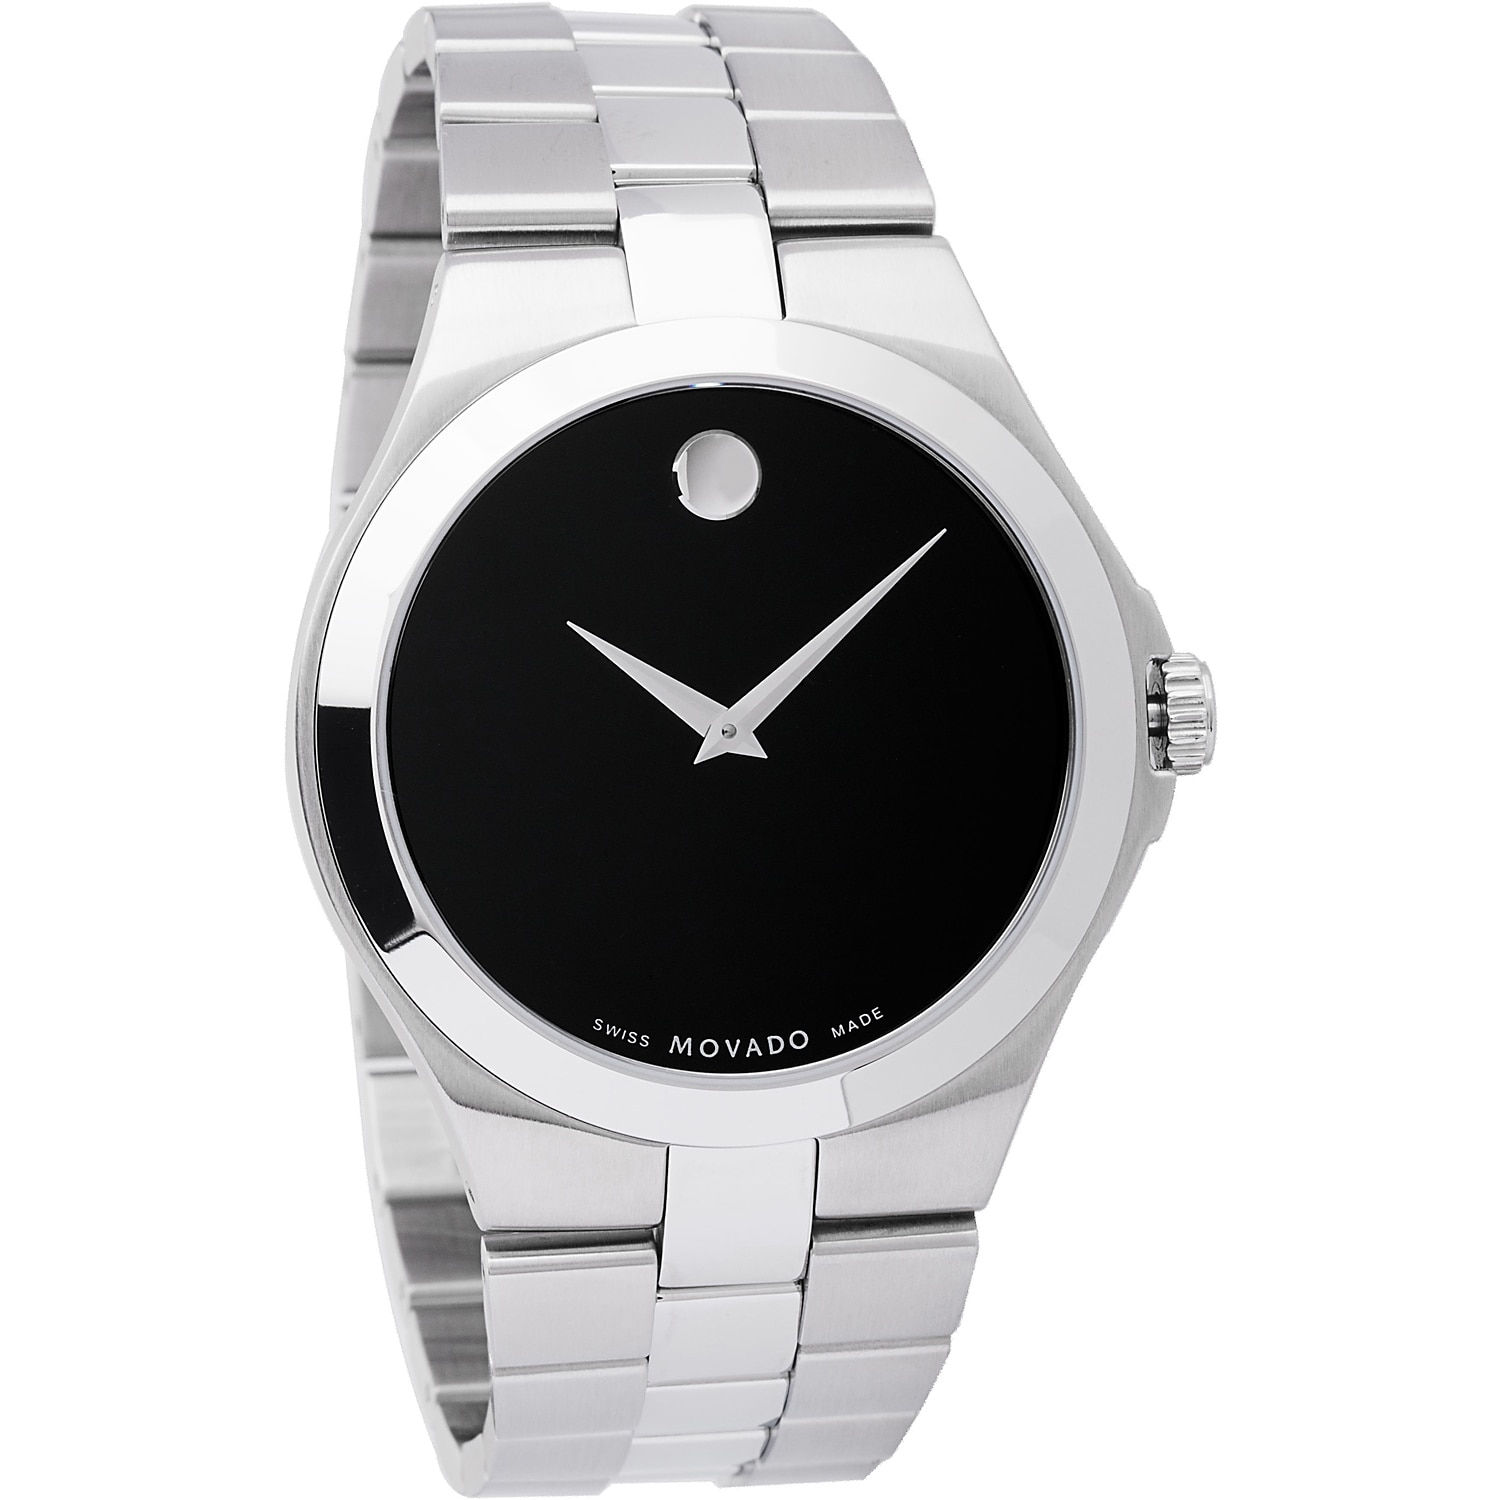 Movado Men's 0605746 Junior Stainless Steel Sport Watch, ...